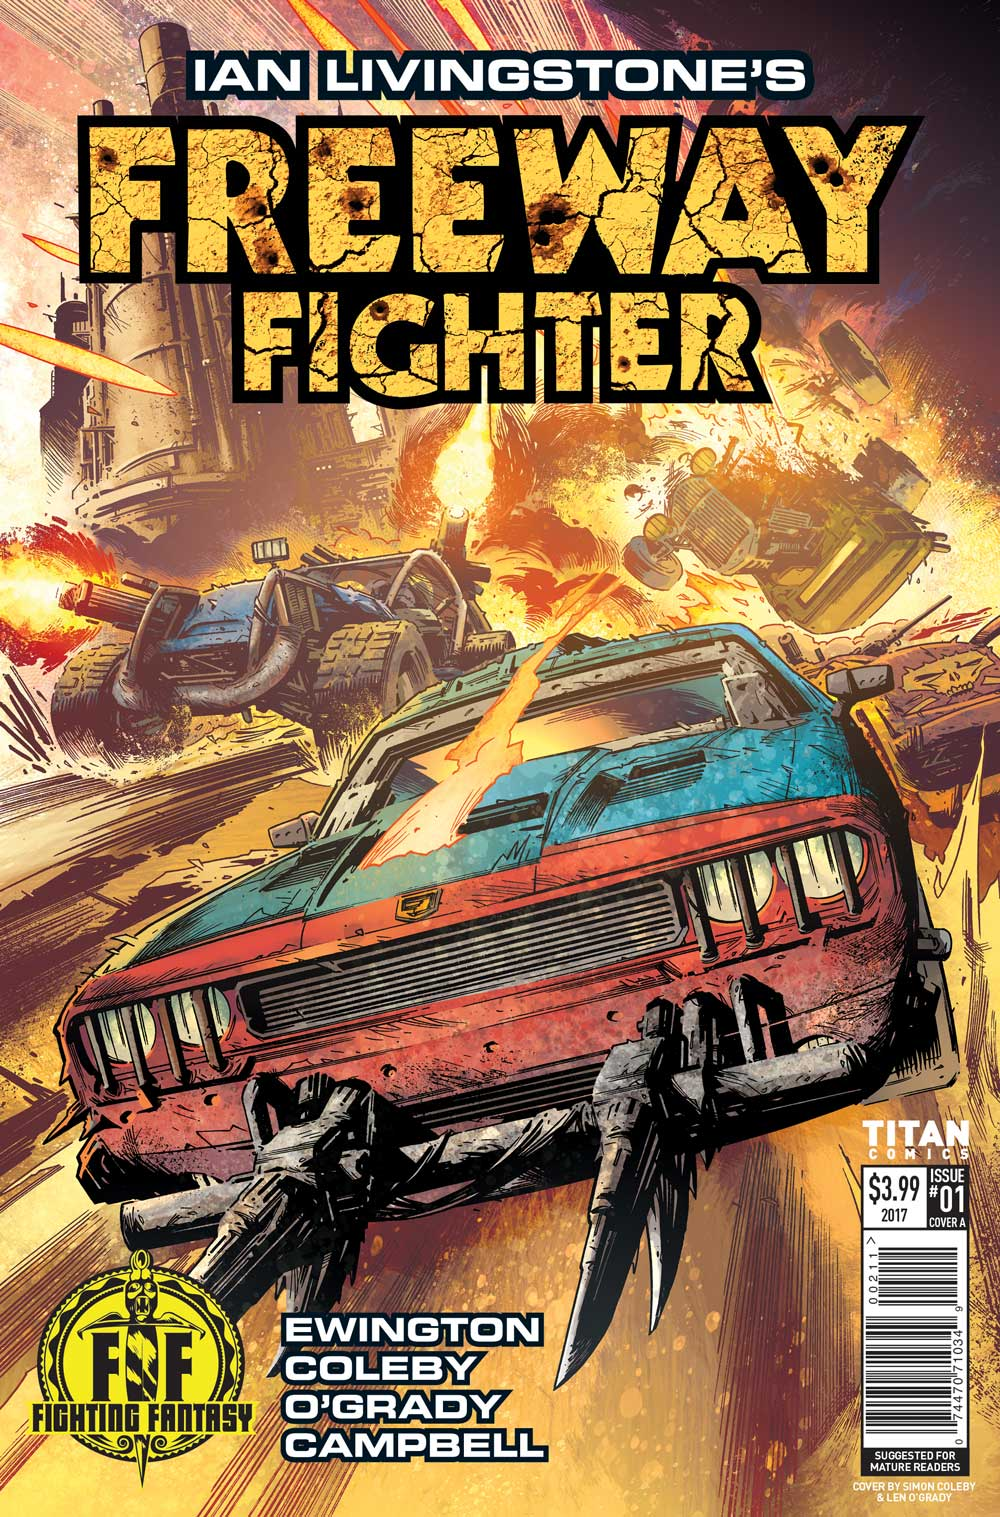 Freeway Fighter #1: Covers + Interior art revealed!